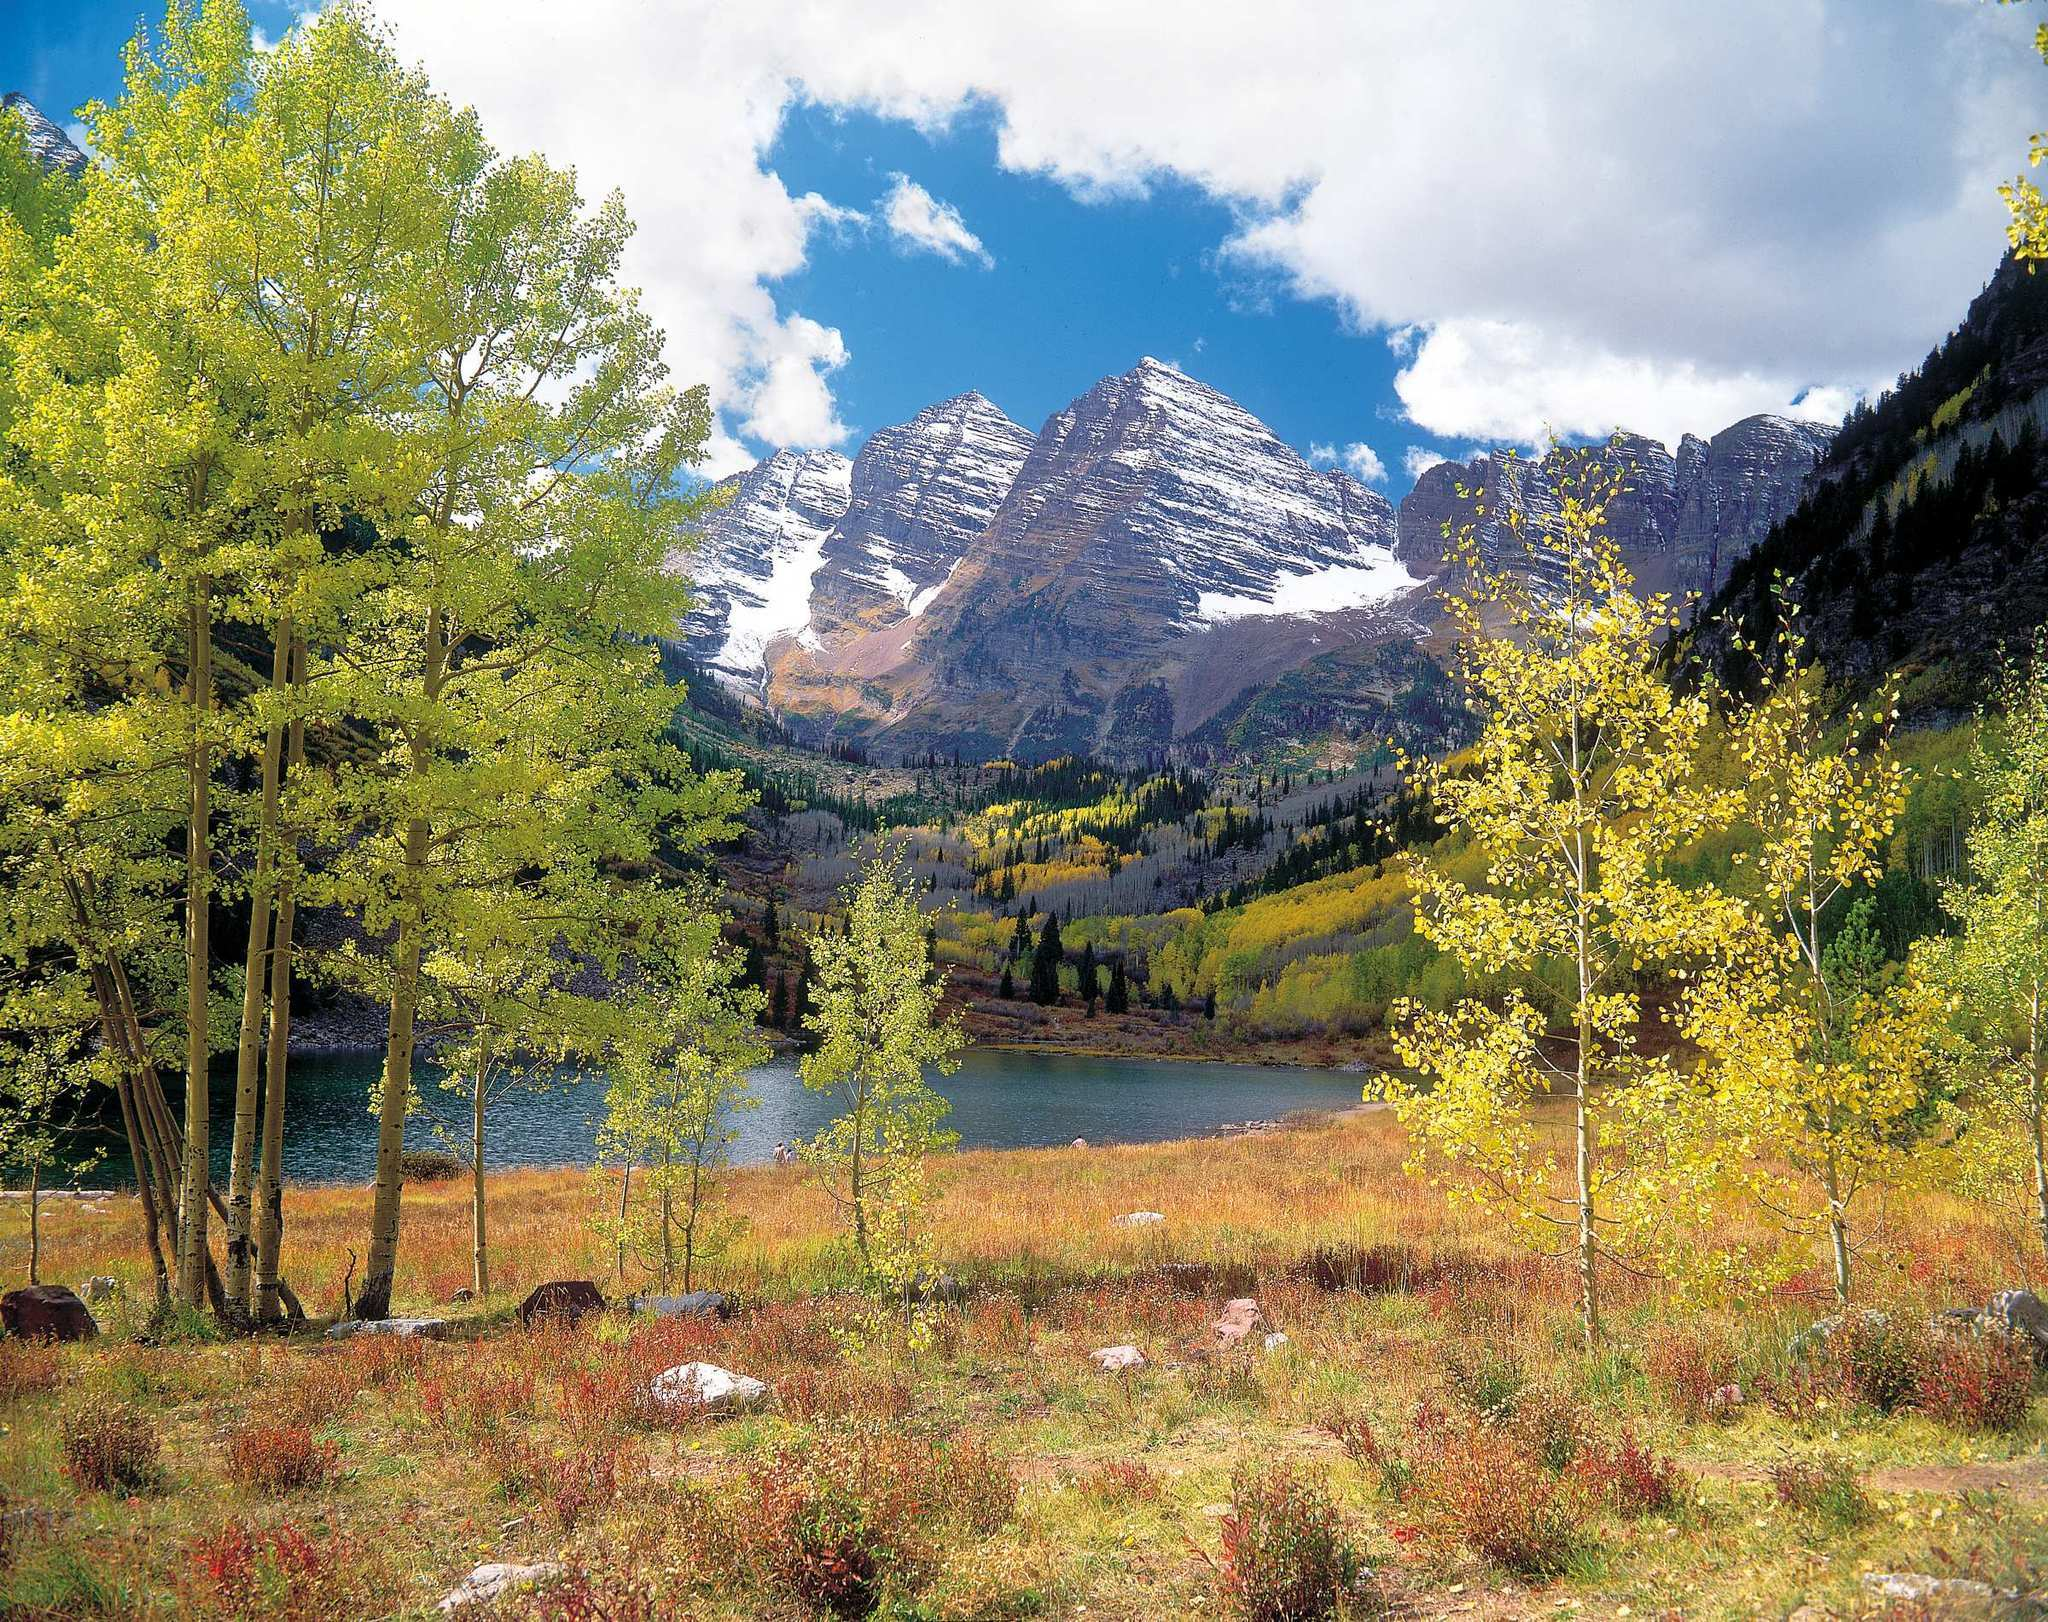 Maroon Bells, a popular sight to photograph.